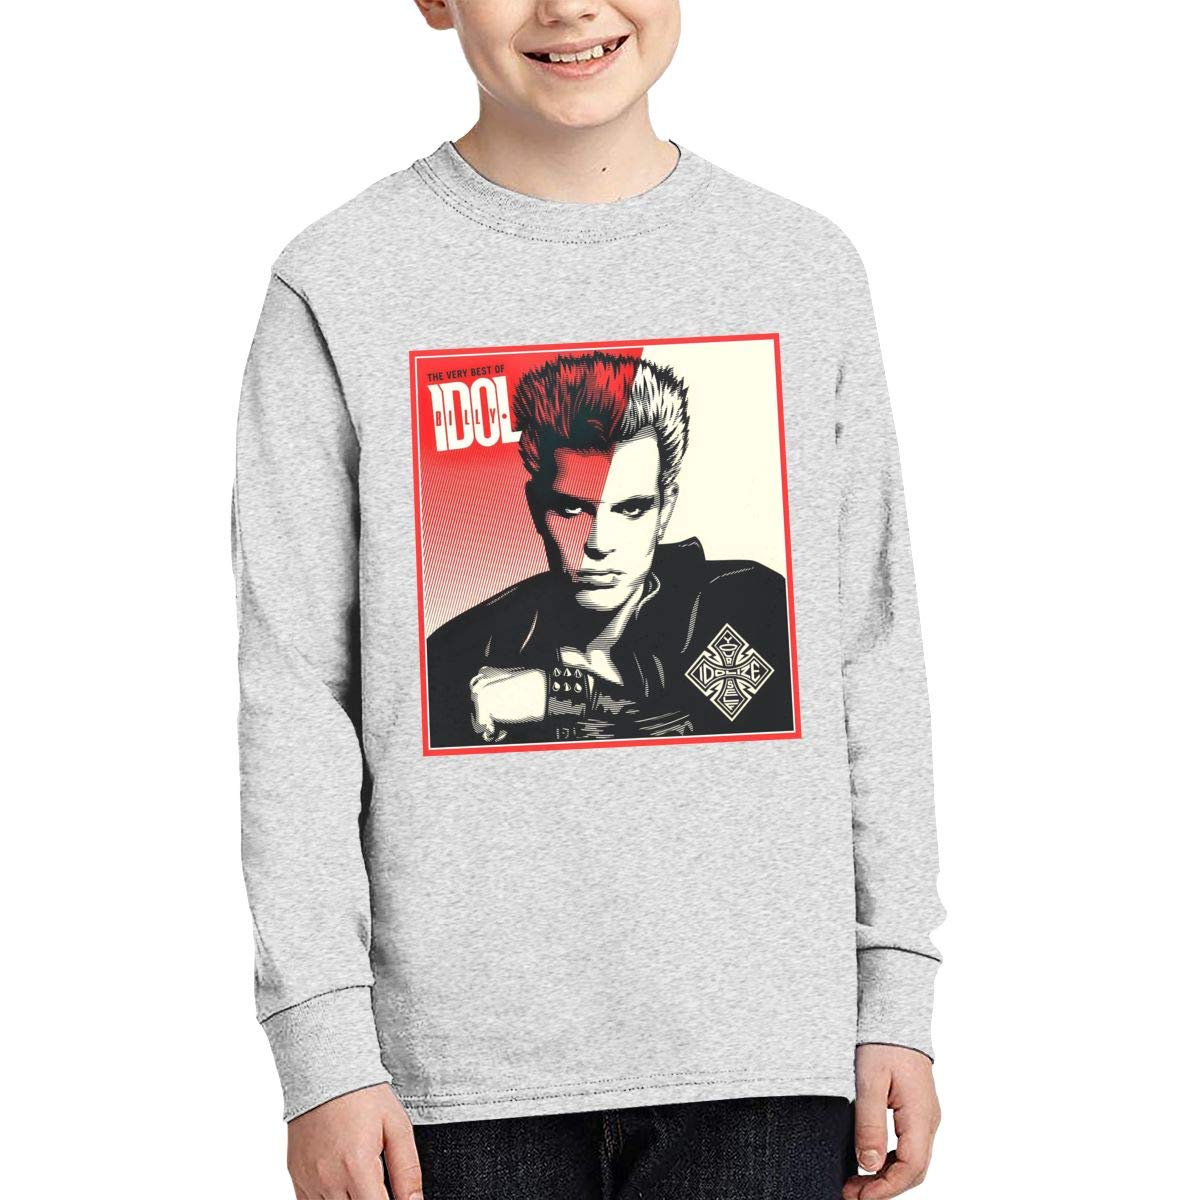 TWOSKILL Youth Billy Rebell Yell Idol Long Sleeves Shirt Boys Girls